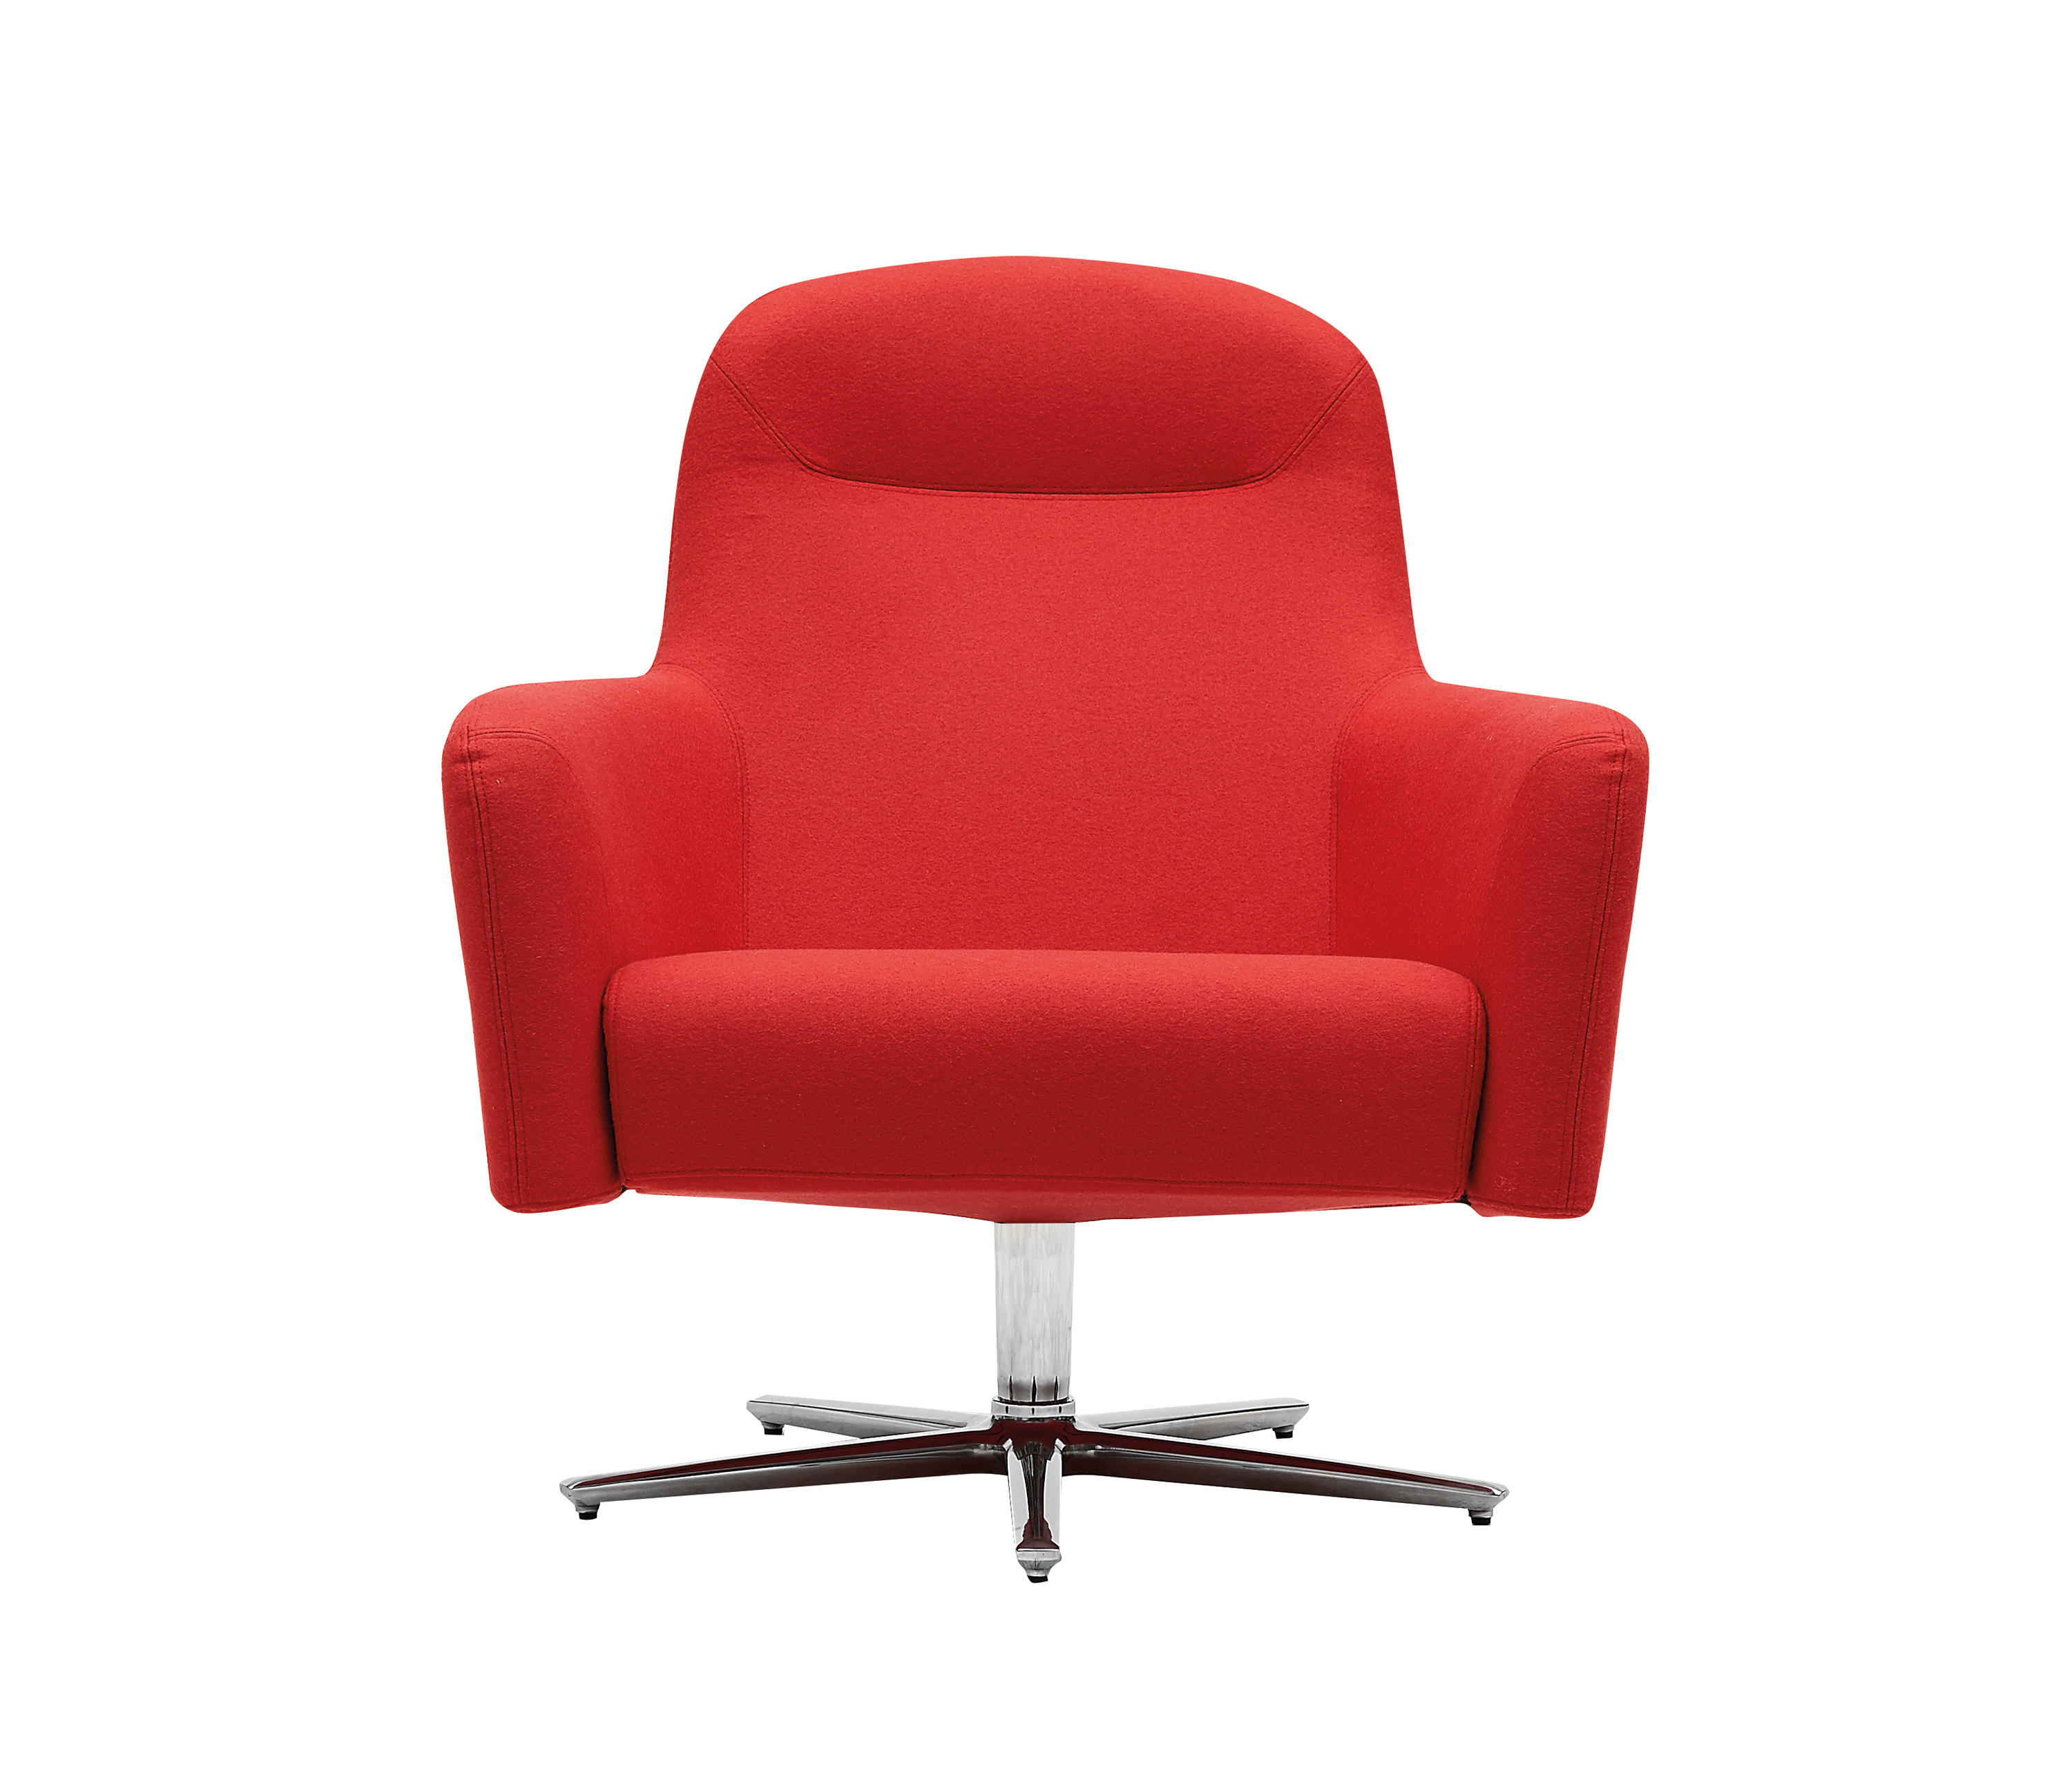 WING CHAIRS High quality designer WING CHAIRS